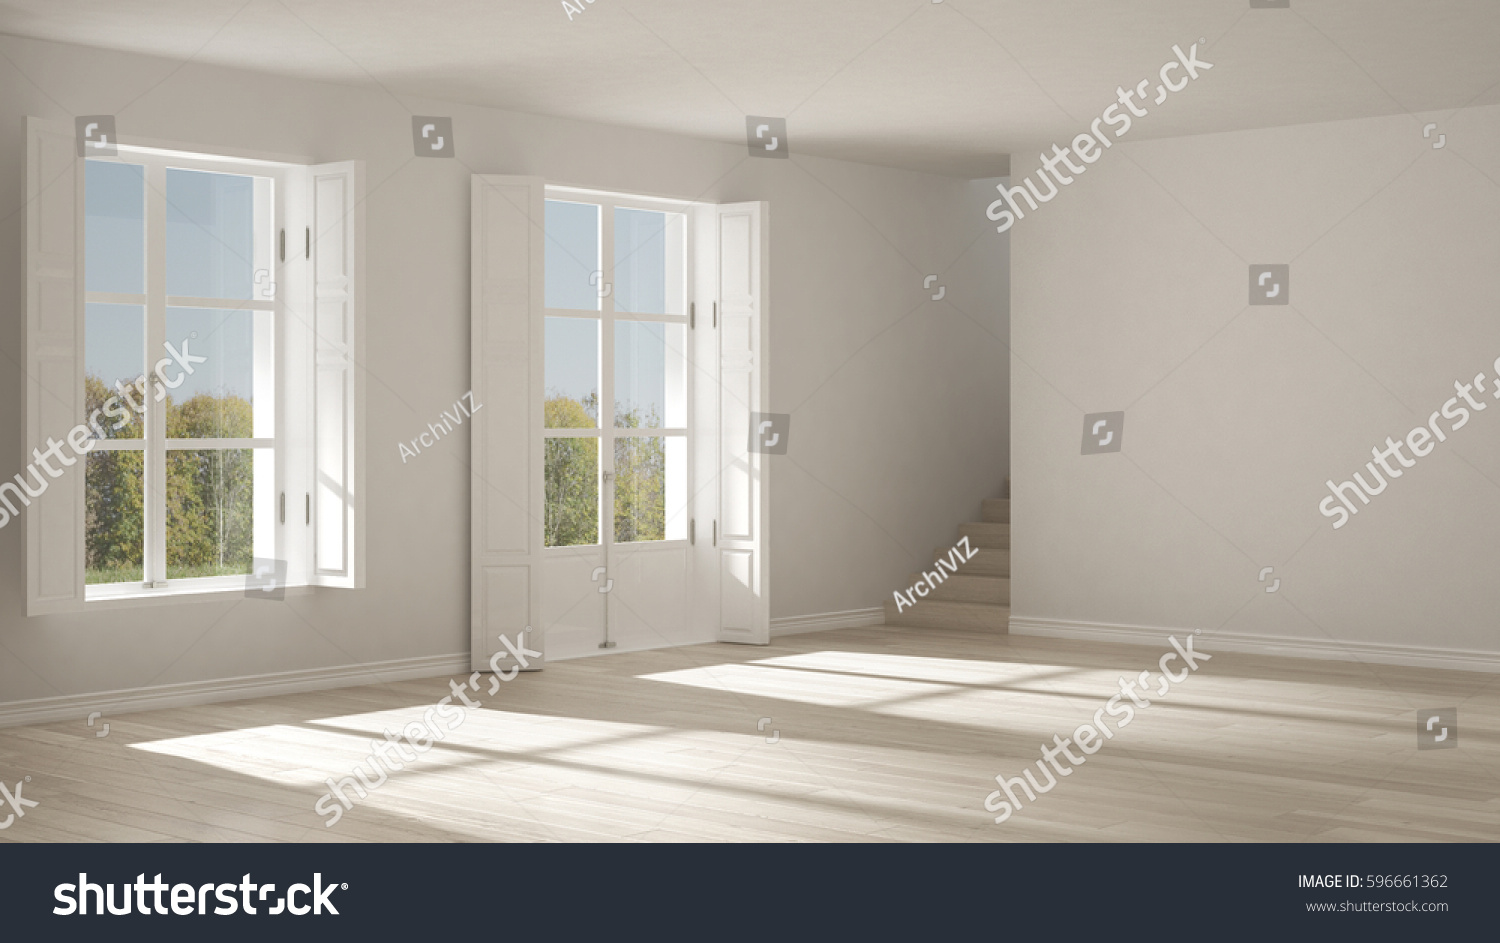 Empty Room With Windows And Stairs, Minimalist Scandinavian Interior Design,  3d Illustration